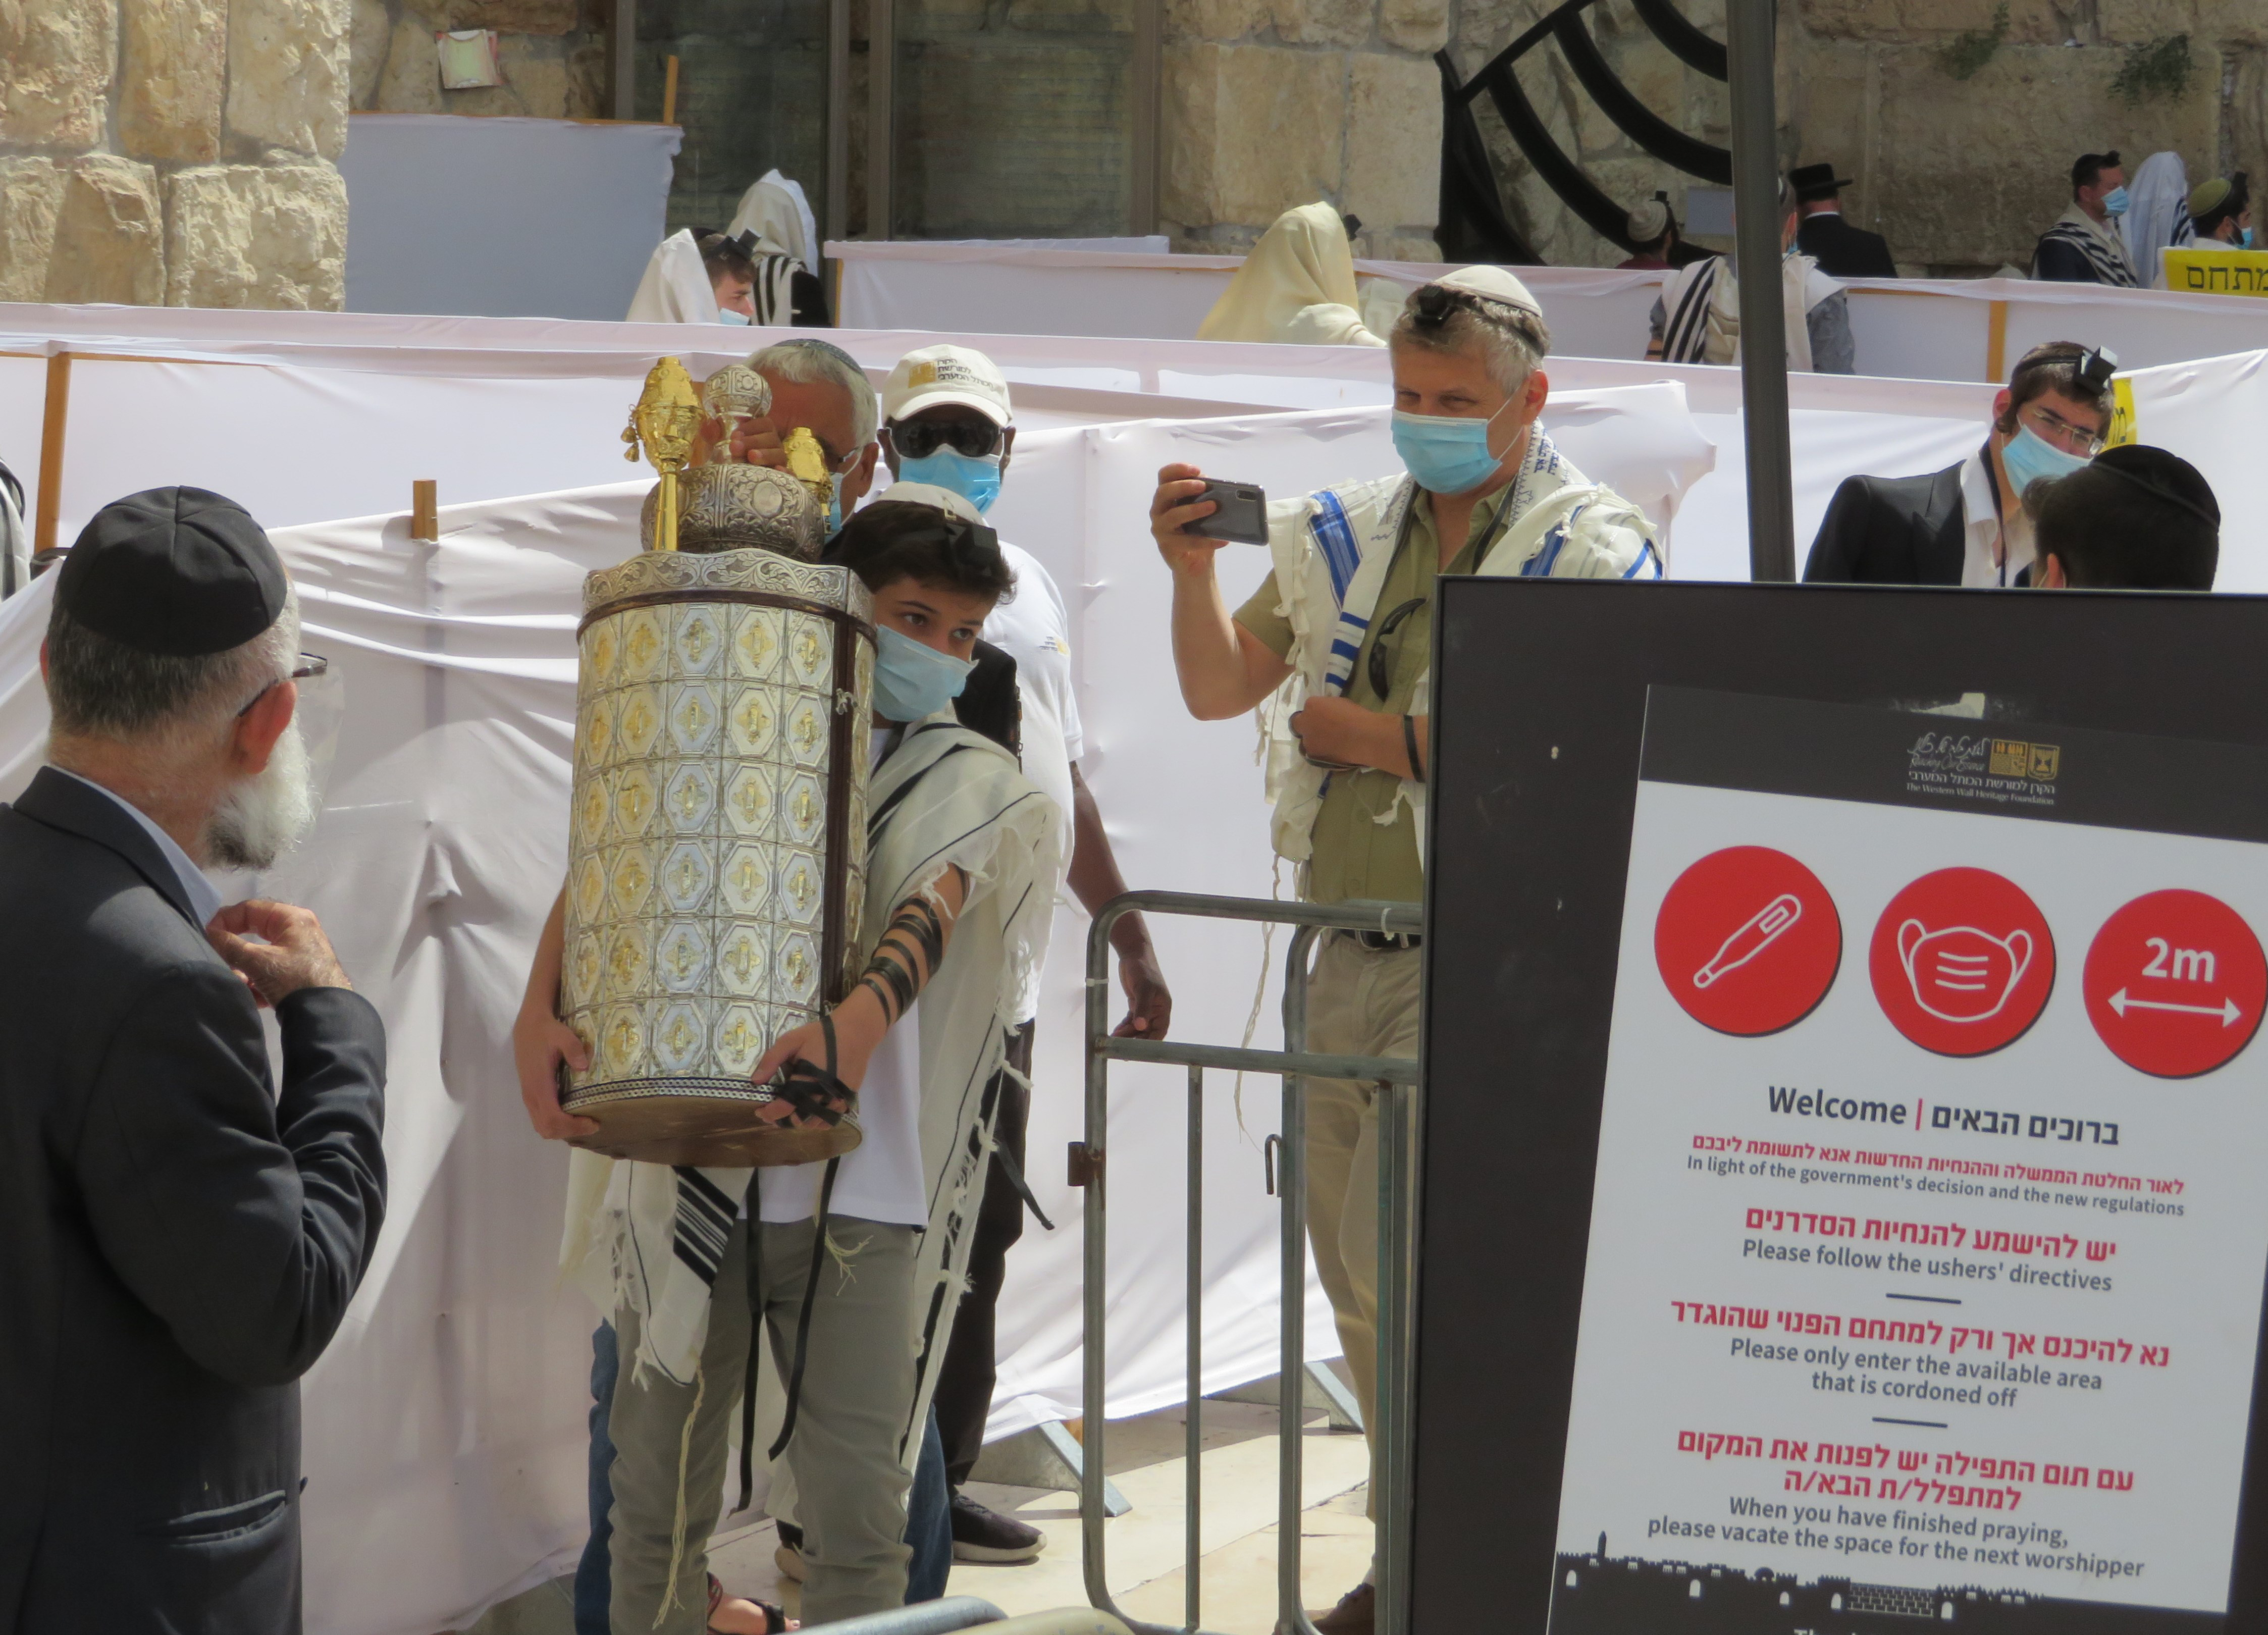 A young boy celebrates his Bar Mitzvah at the Western Wall, during COVID-19.